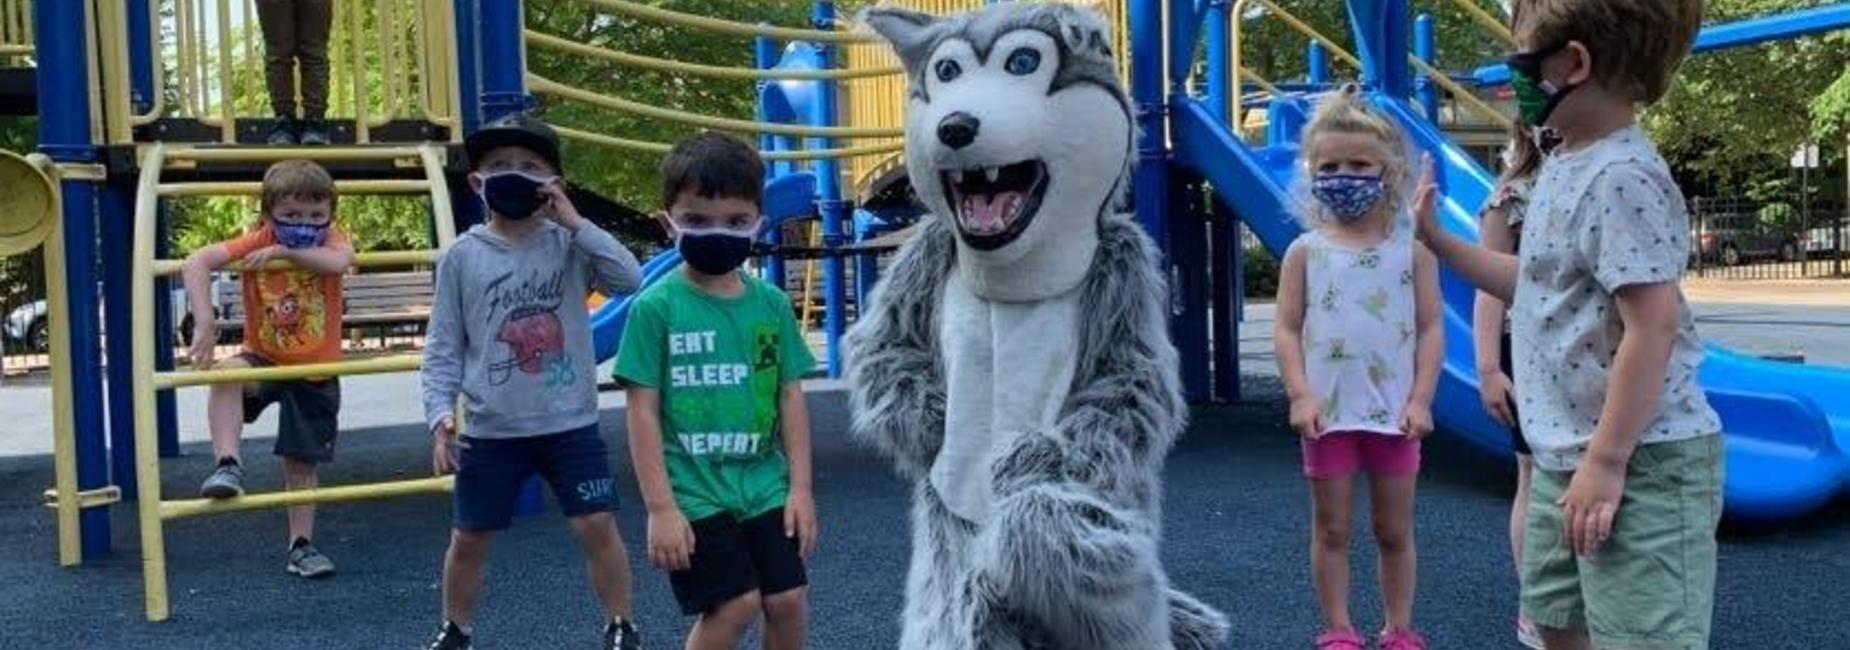 Kids playing outside with mascot